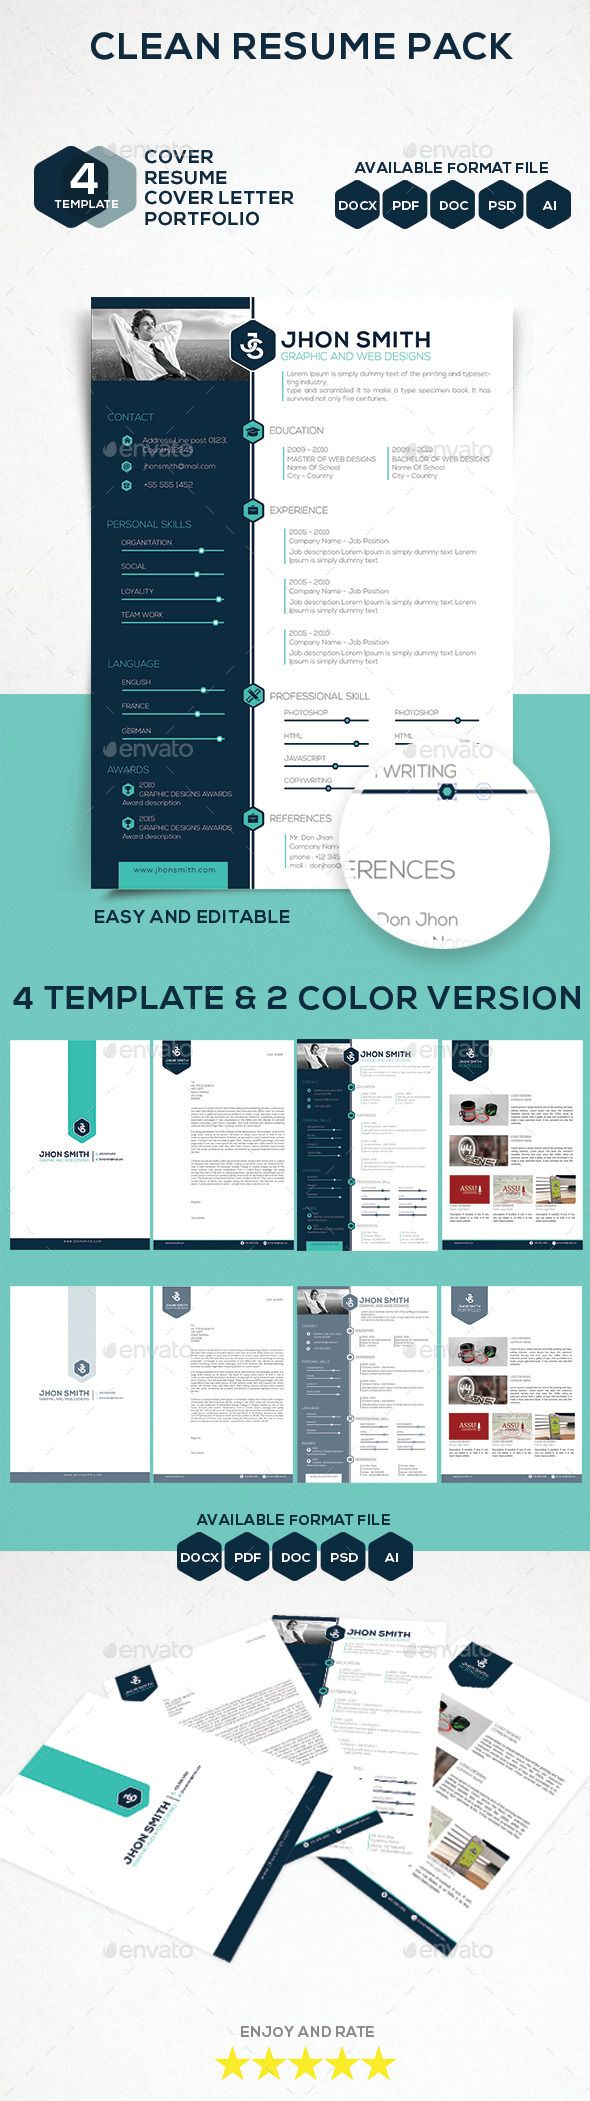 Resumedoc Clean Resume Pack  Pinterest  Template Cover Letter Resume And .